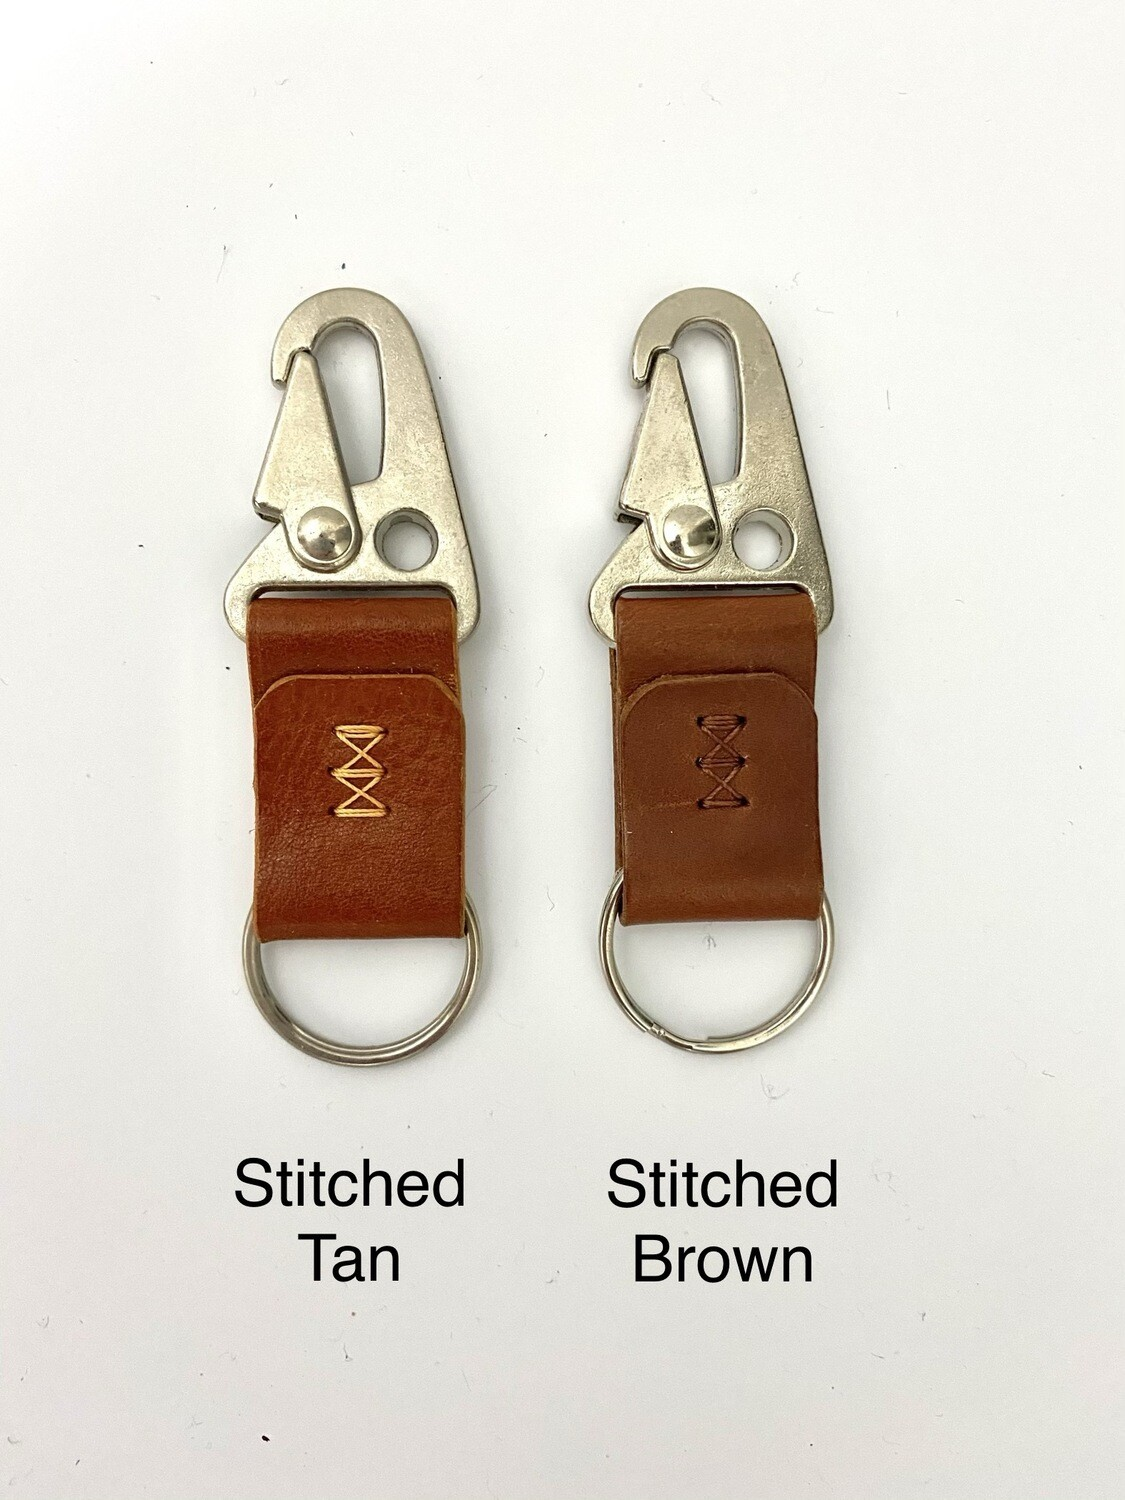 Leather Key Chain Stitched by ModestGoods